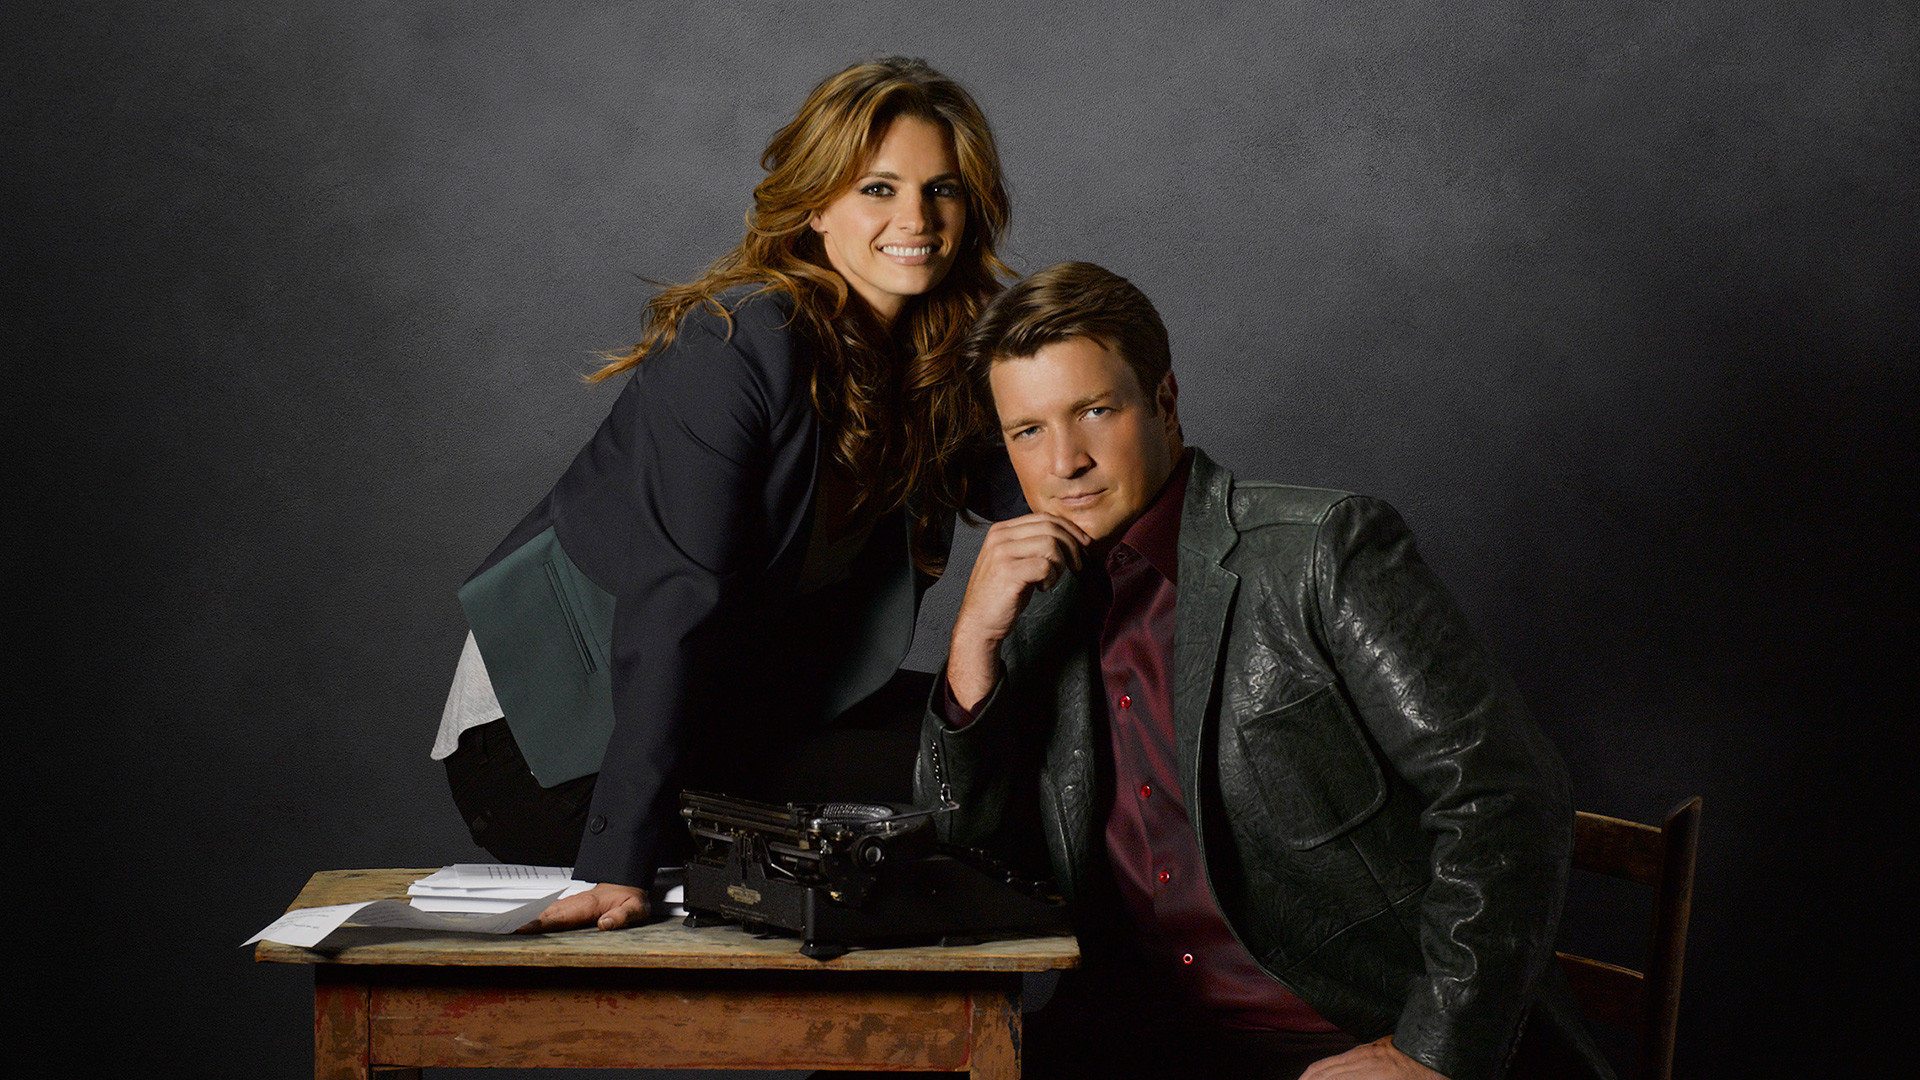 Download hd 1080p Castle TV Show PC background ID:101050 for free